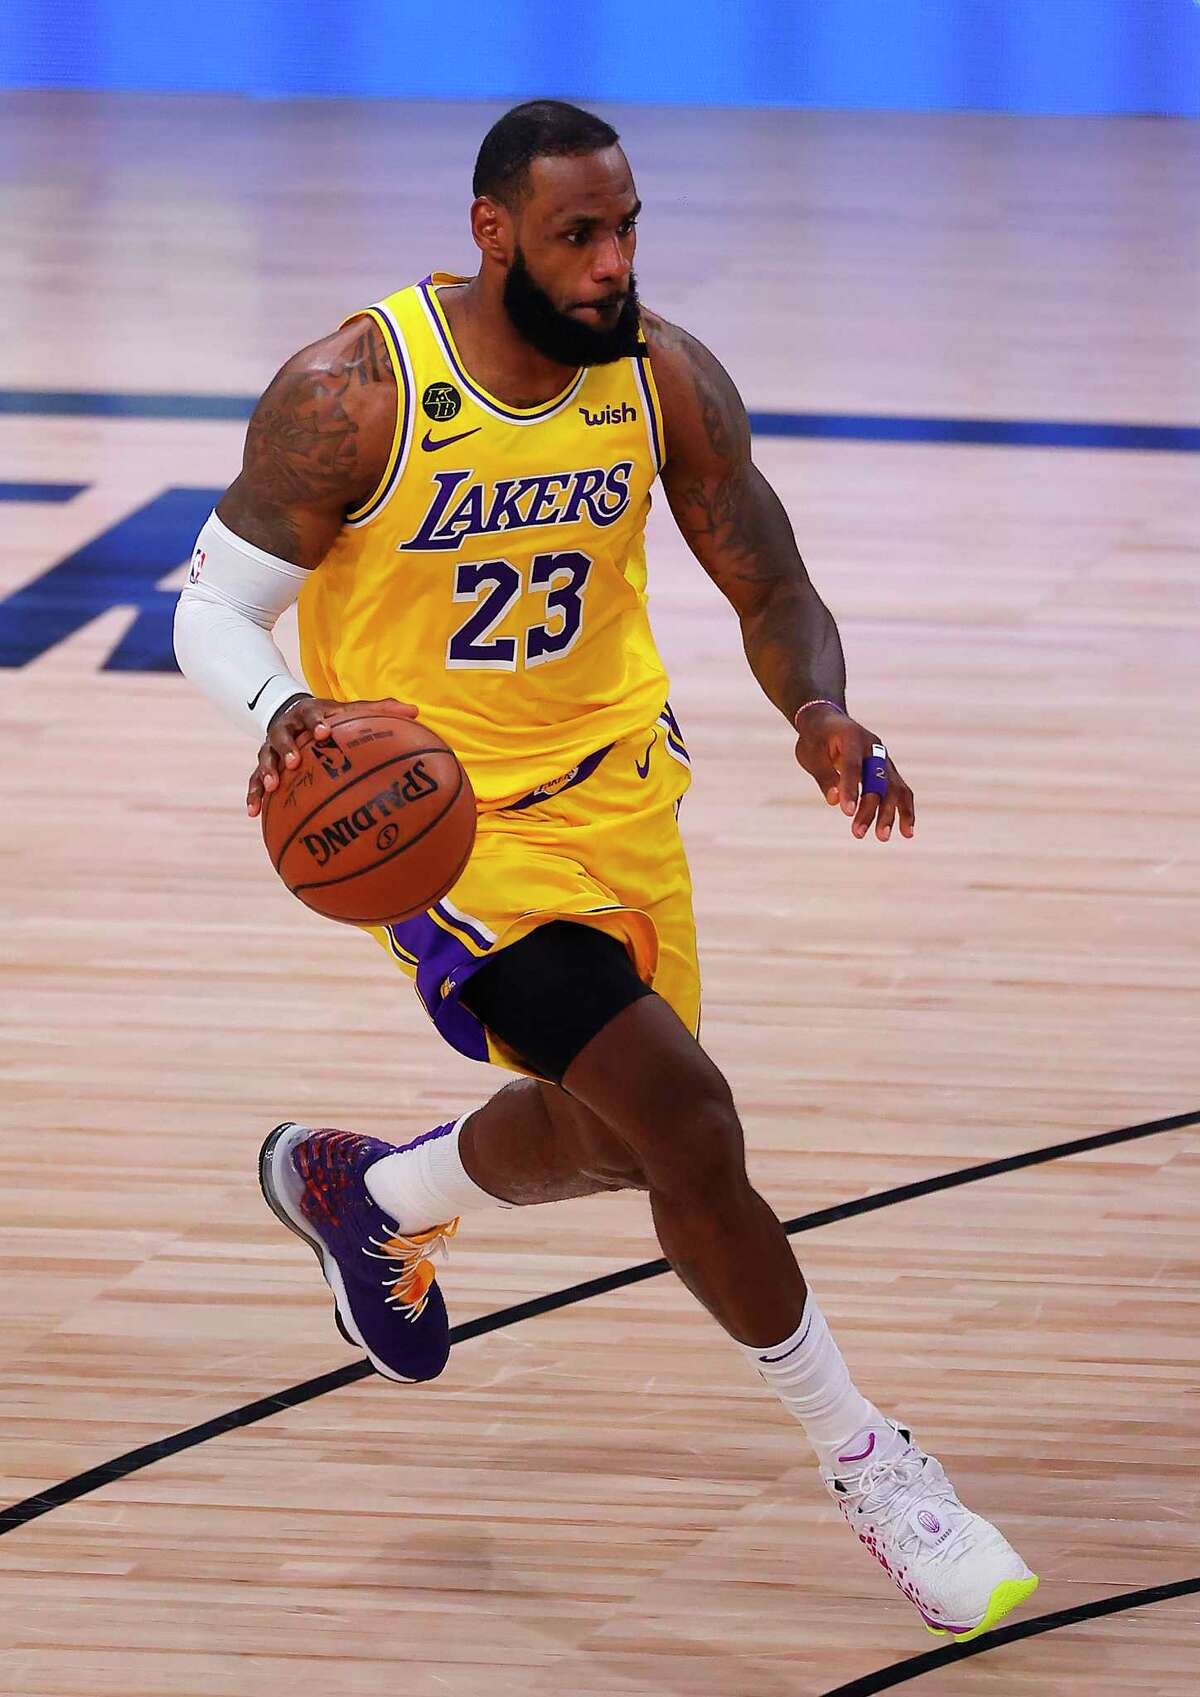 LAKE BUENA VISTA, FLORIDA - SEPTEMBER 24: LeBron James #23 of the Los Angeles Lakers dribbles the ball during the second quarter against the Denver Nuggets in Game Four of the Western Conference Finals during the 2020 NBA Playoffs at AdventHealth Arena at the ESPN Wide World Of Sports Complex on September 24, 2020 in Lake Buena Vista, Florida. NOTE TO USER: User expressly acknowledges and agrees that, by downloading and or using this photograph, User is consenting to the terms and conditions of the Getty Images License Agreement. (Photo by Mike Ehrmann/Getty Images)